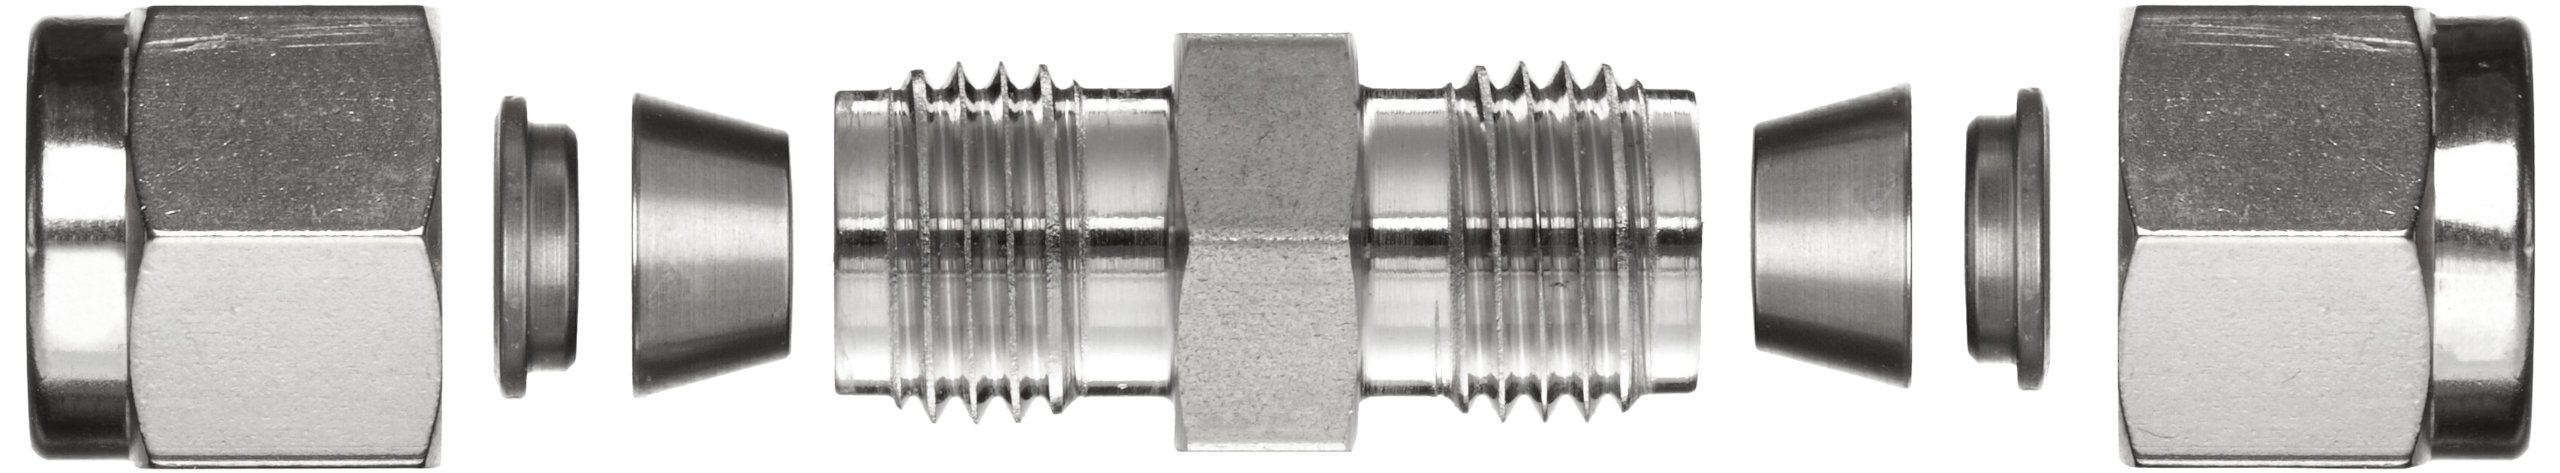 3//8 Tube OD x 1//4 Tube OD 3//8 Tube OD x 1//4 Tube OD Parker Hannifin Parker A-Lok 6RU4-316 316 Stainless Steel Compression Tube Fitting Reducing Union